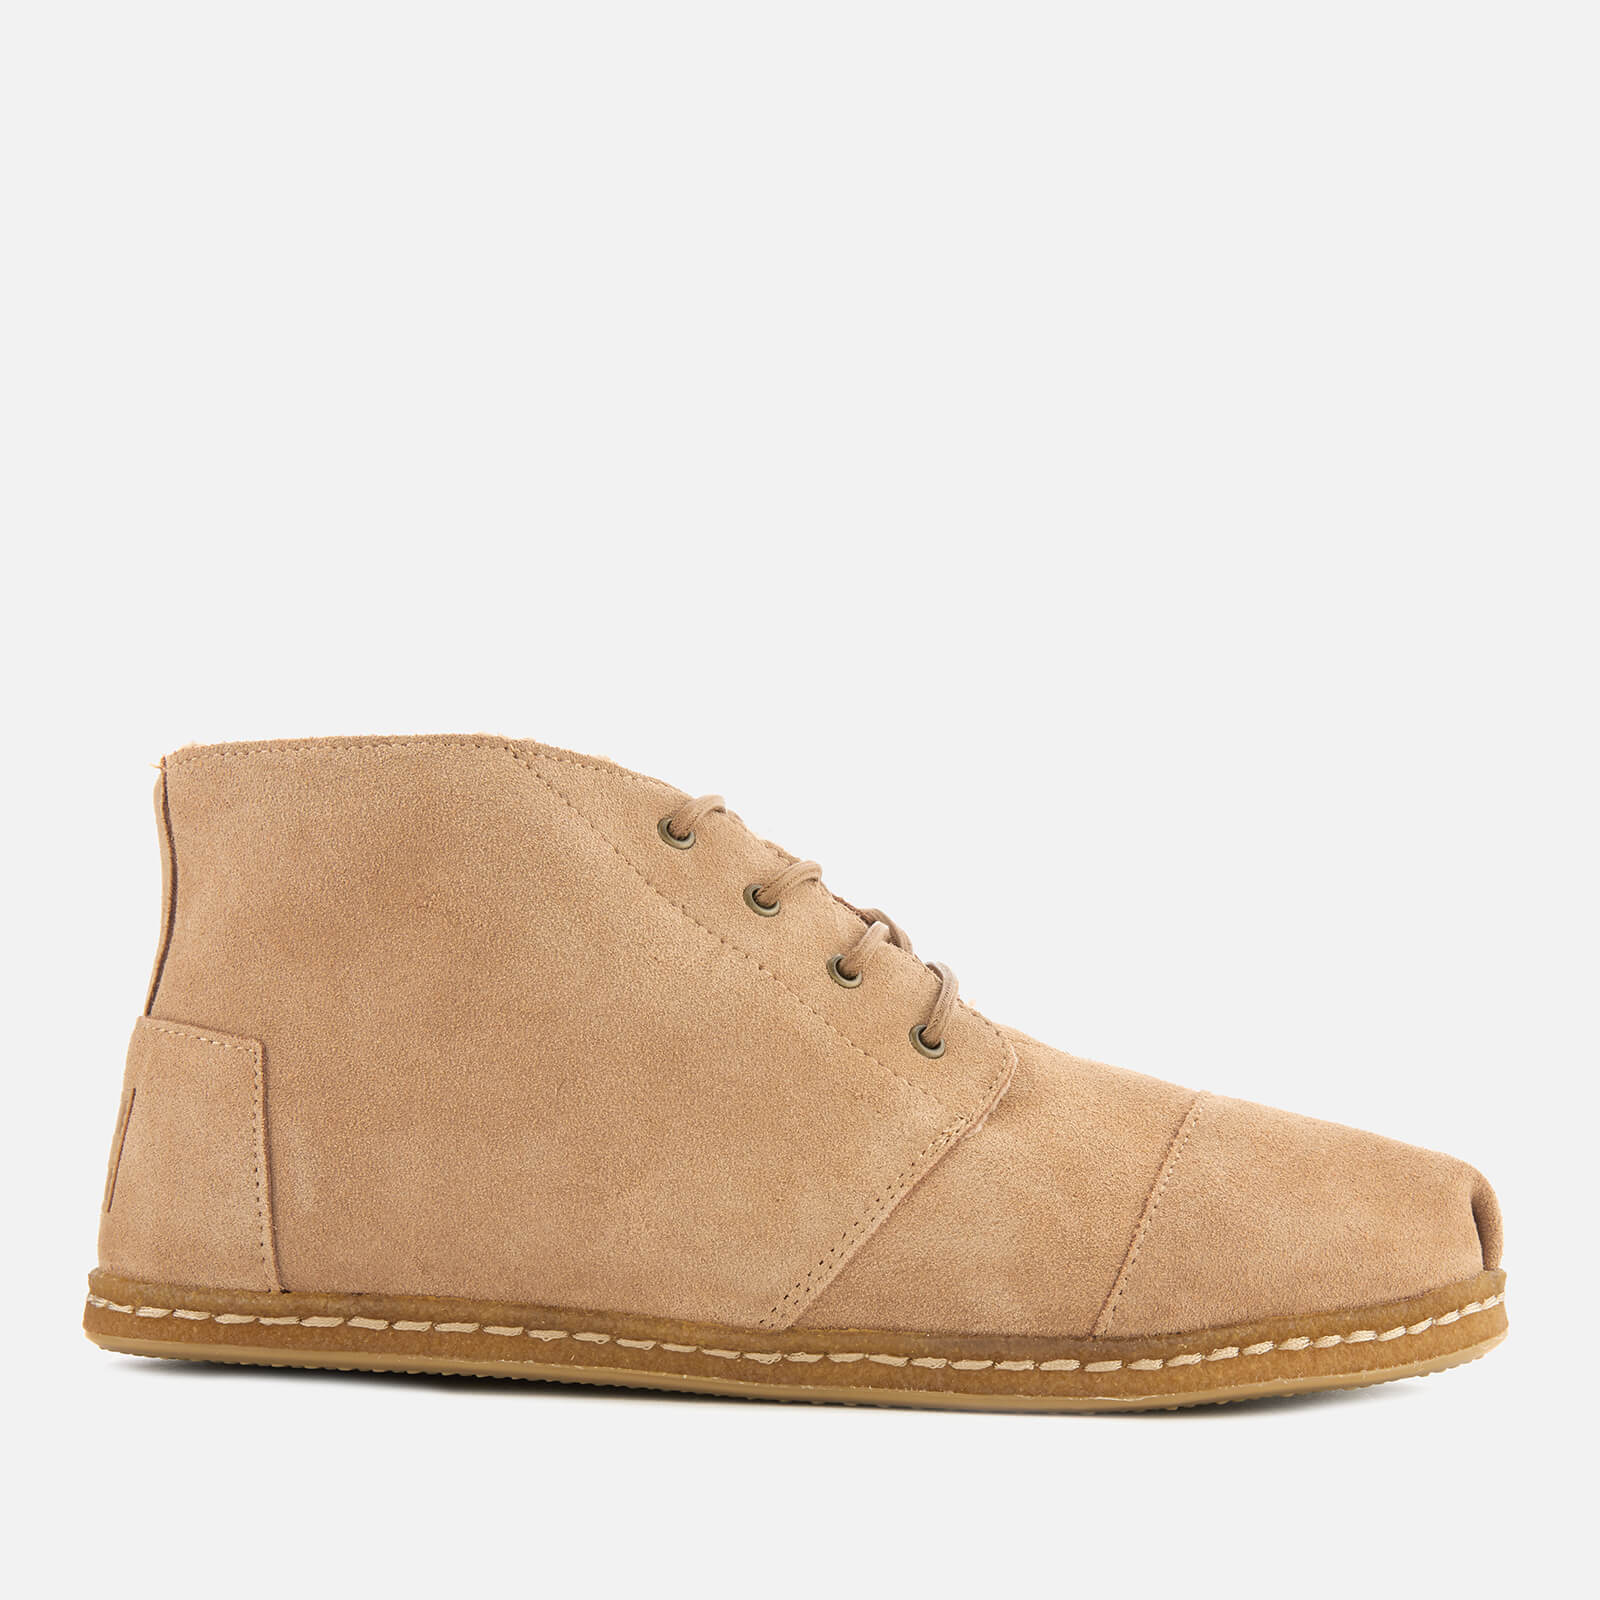 a1b7f3636ba TOMS Men s Bota Suede and Shearling Lace Up Boots - Toffee Clothing ...